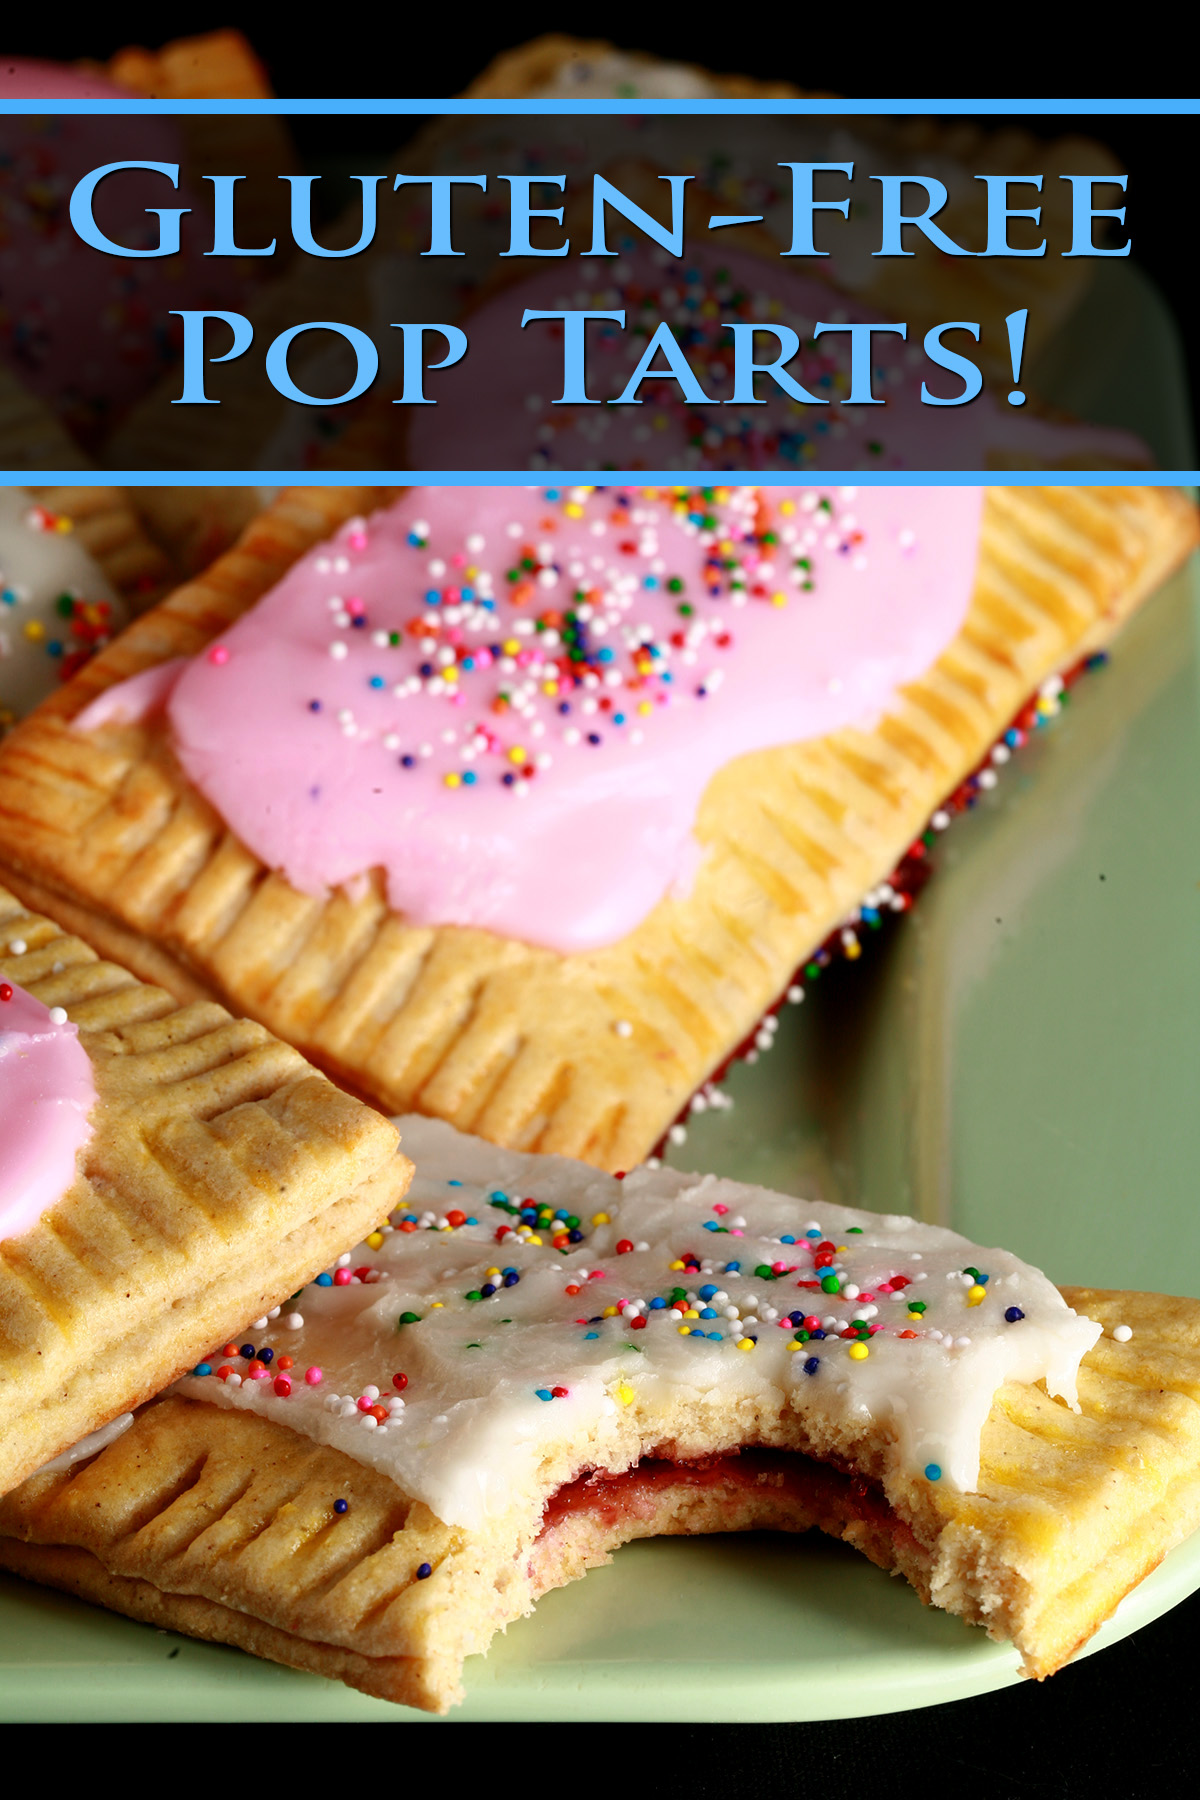 A plate of toaster pastries made from this gluten-free poptarts recipe. They are frosted with pink and white icing, and topped with coloured sprinkles.